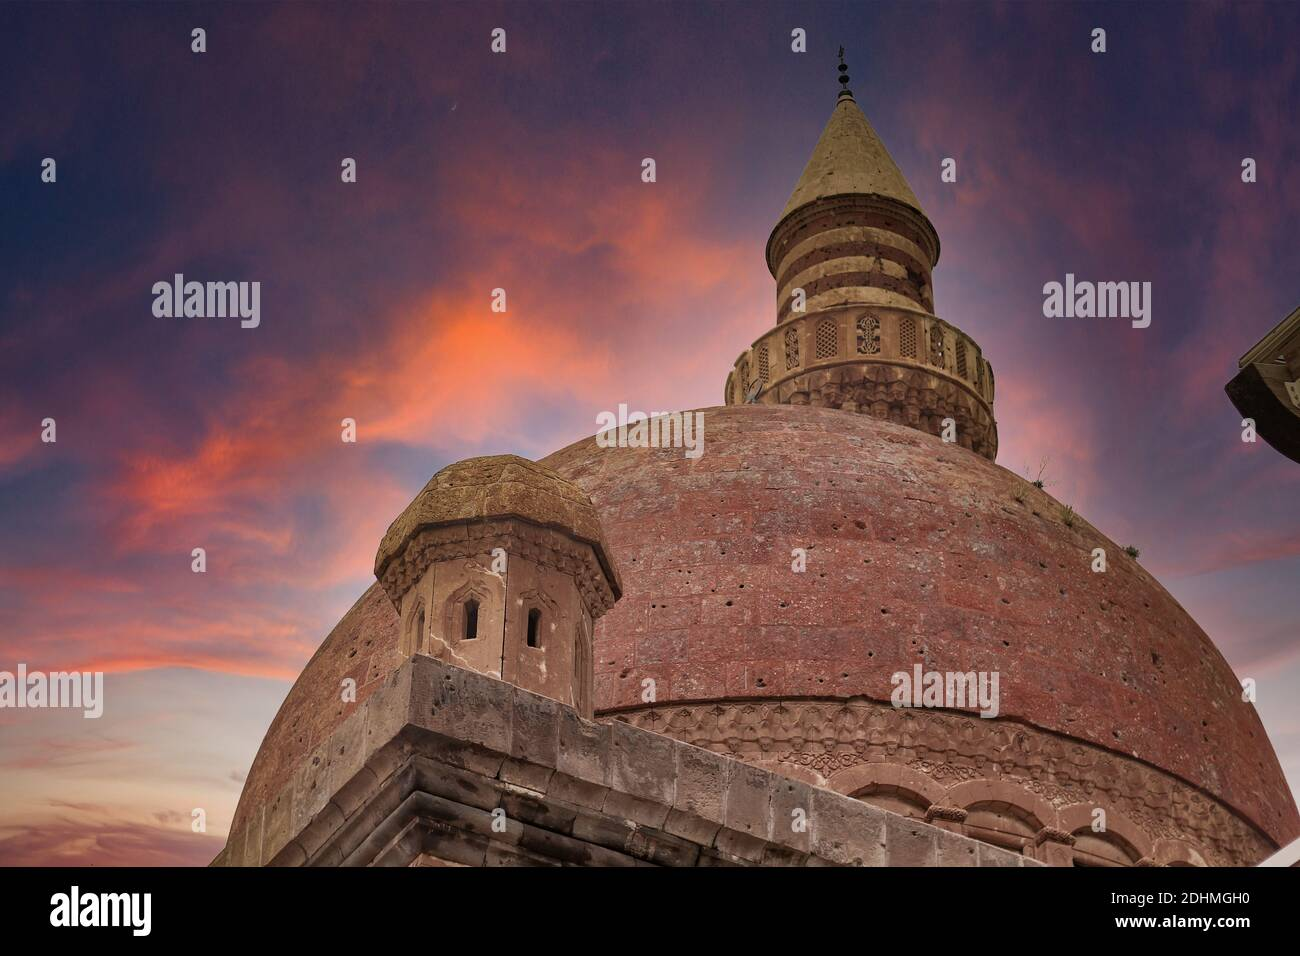 Agri, Turkey - May 2018: The minaret of Ishak Pasha Palace near Dogubayazit in Eastern Turkey. Beautiful brown mosque in the middle east. Different v Stock Photo